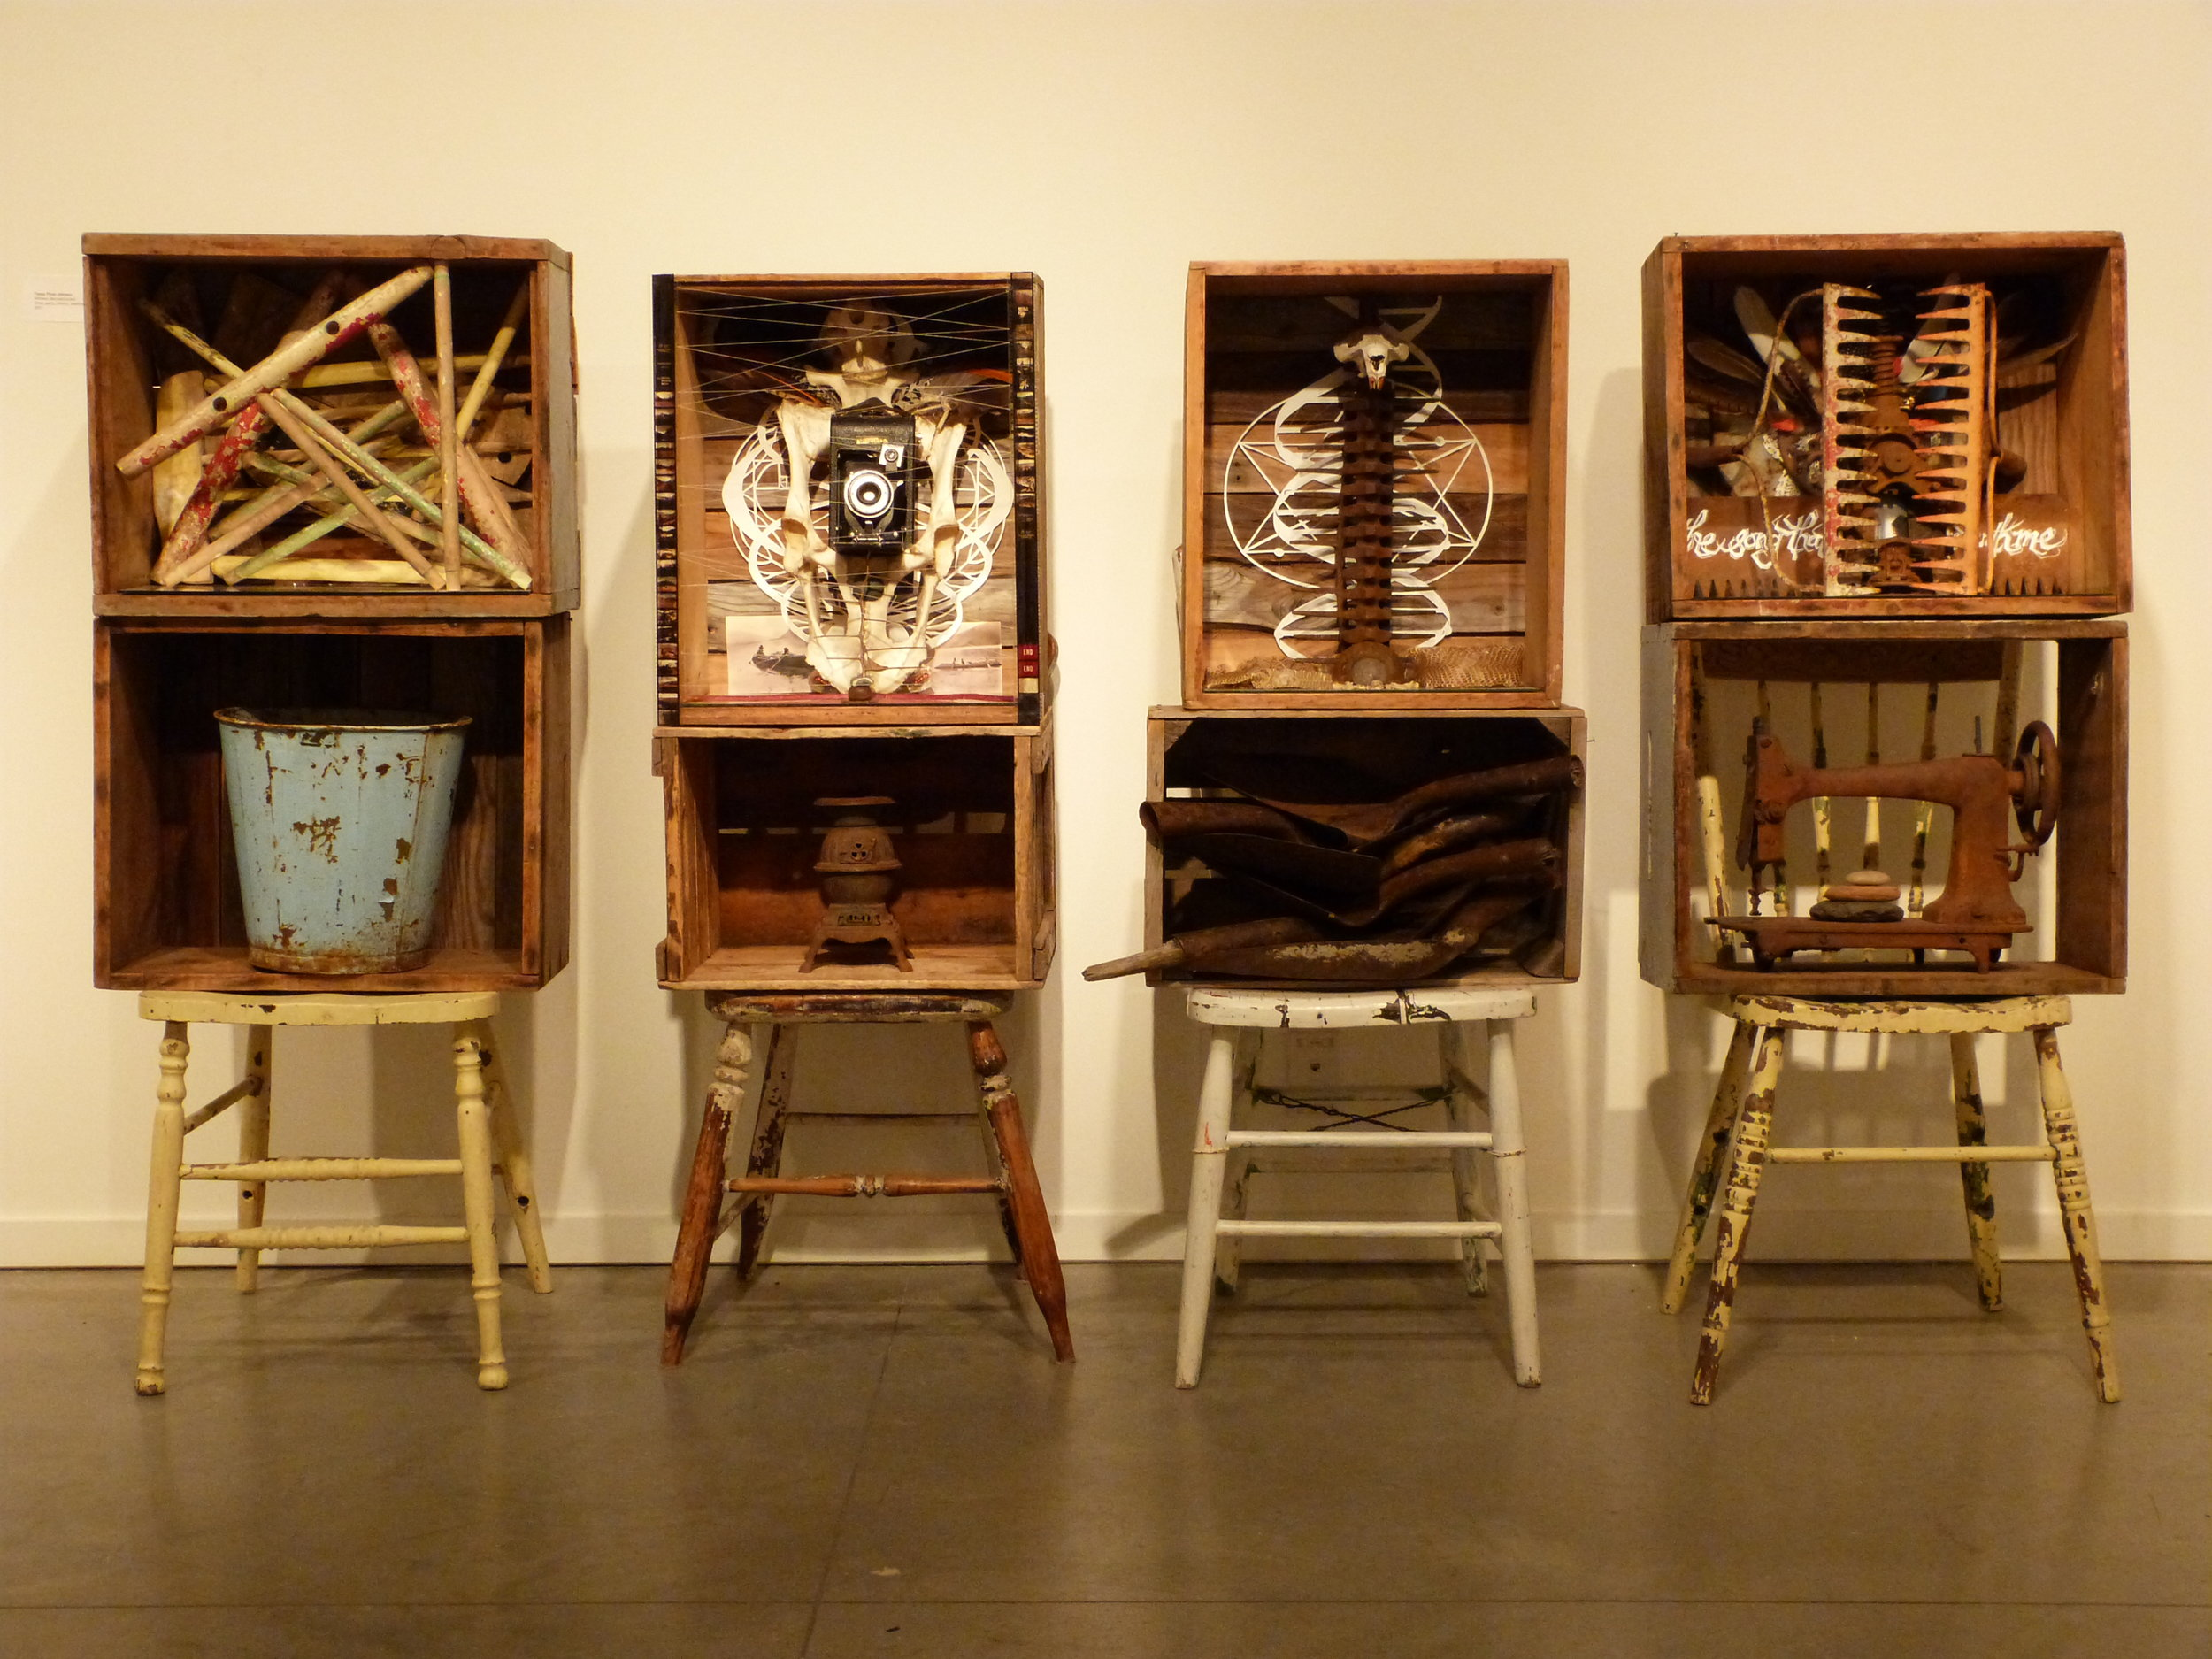 Witness Deconstructed  2011 found and natural objects, paper, beehive boxes, chairs